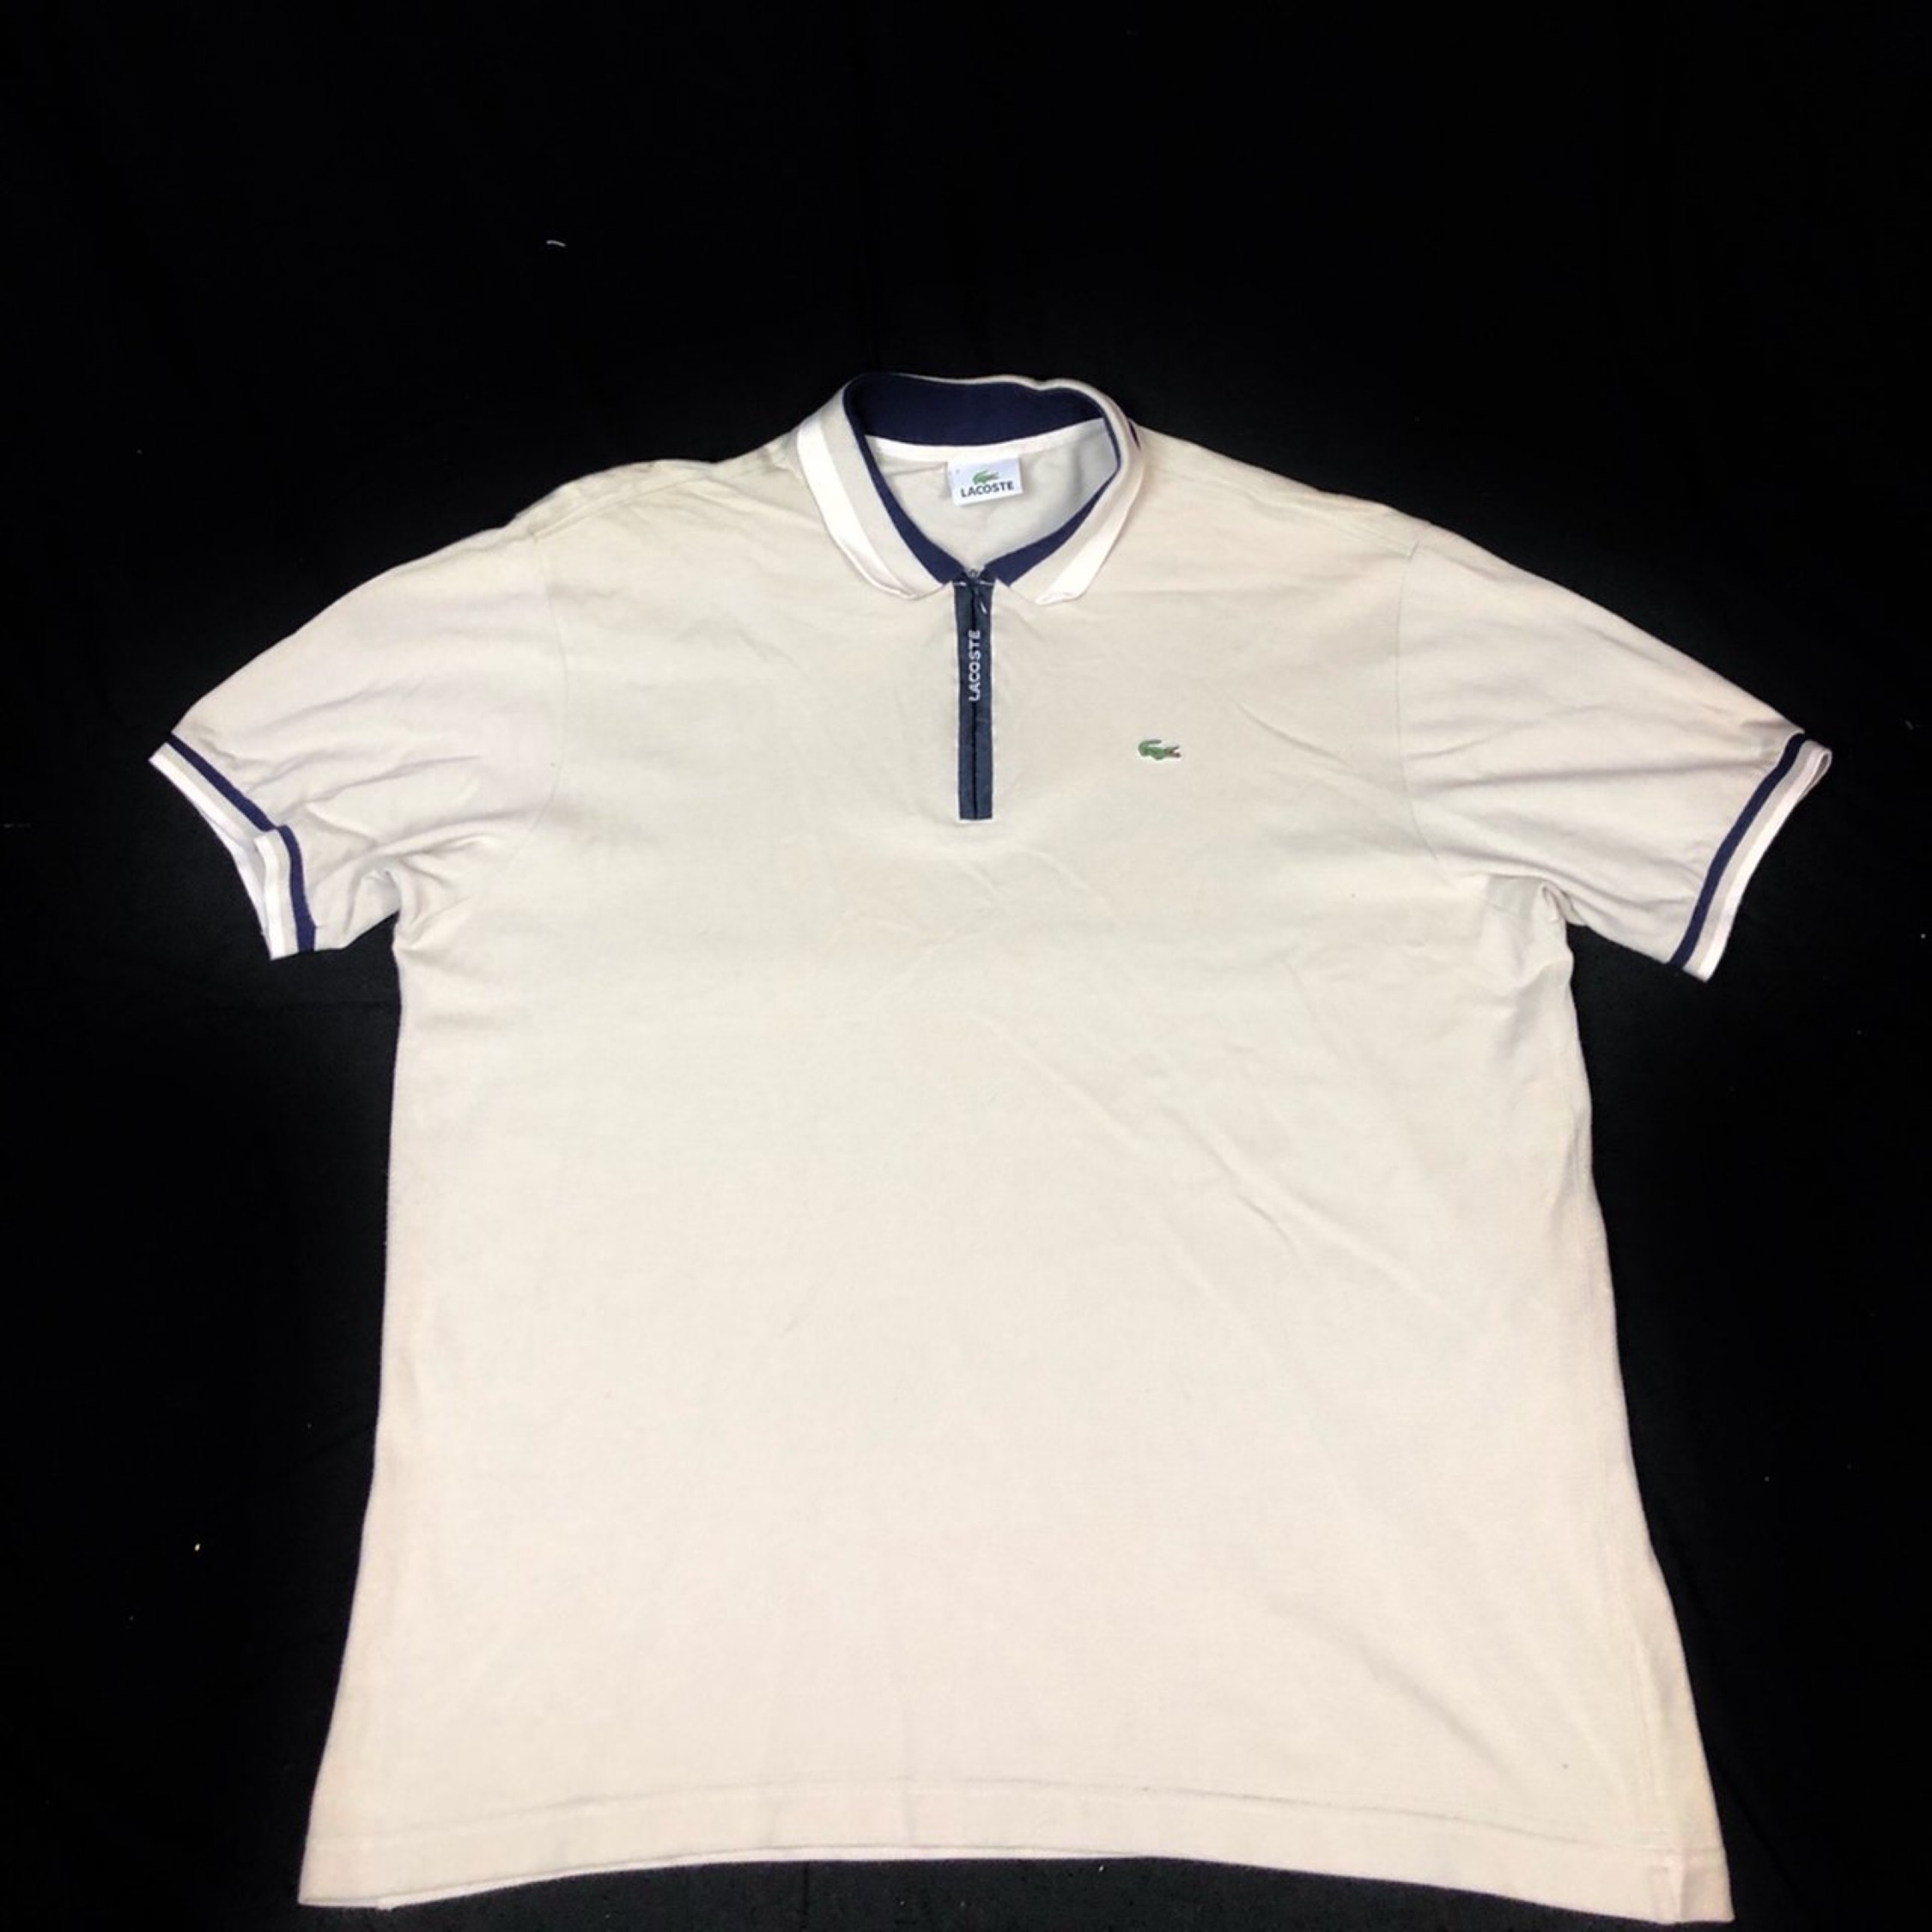 new styles 6e03f 1c654 Vintage 90S Lacoste Spellout Polo Size Xl